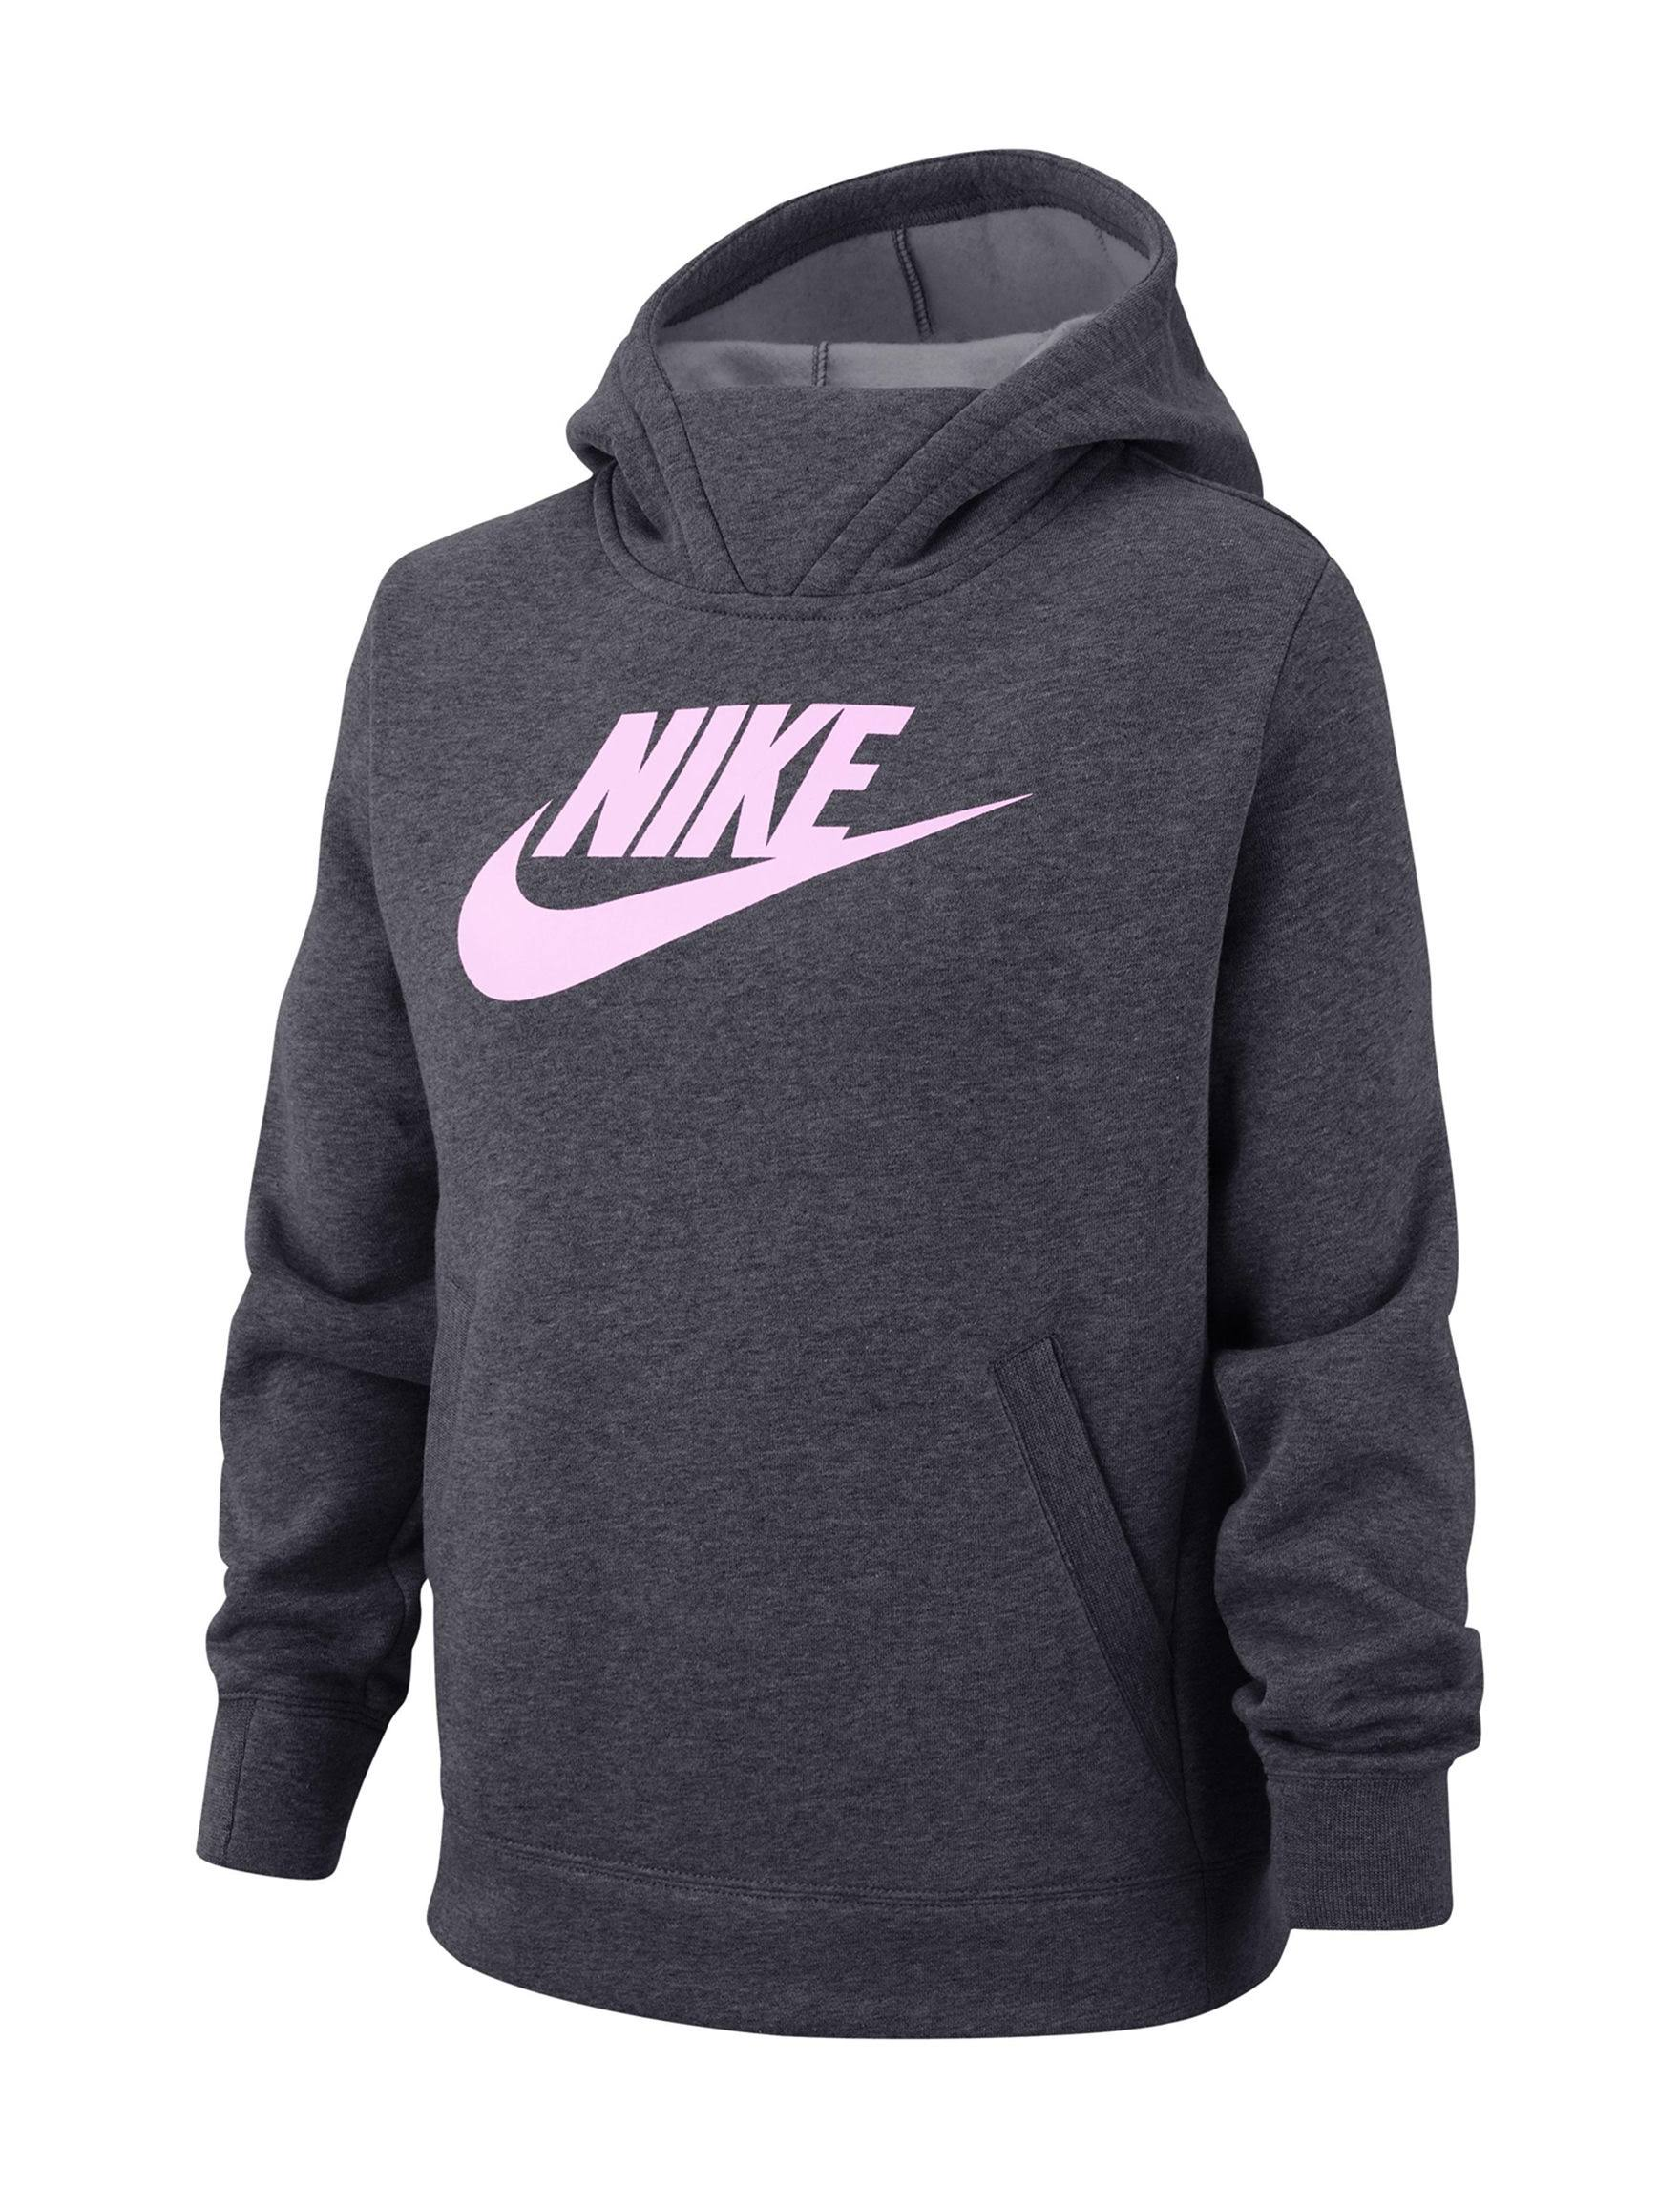 Nike Big Girls' Fleece Logo Hoodie - Grey